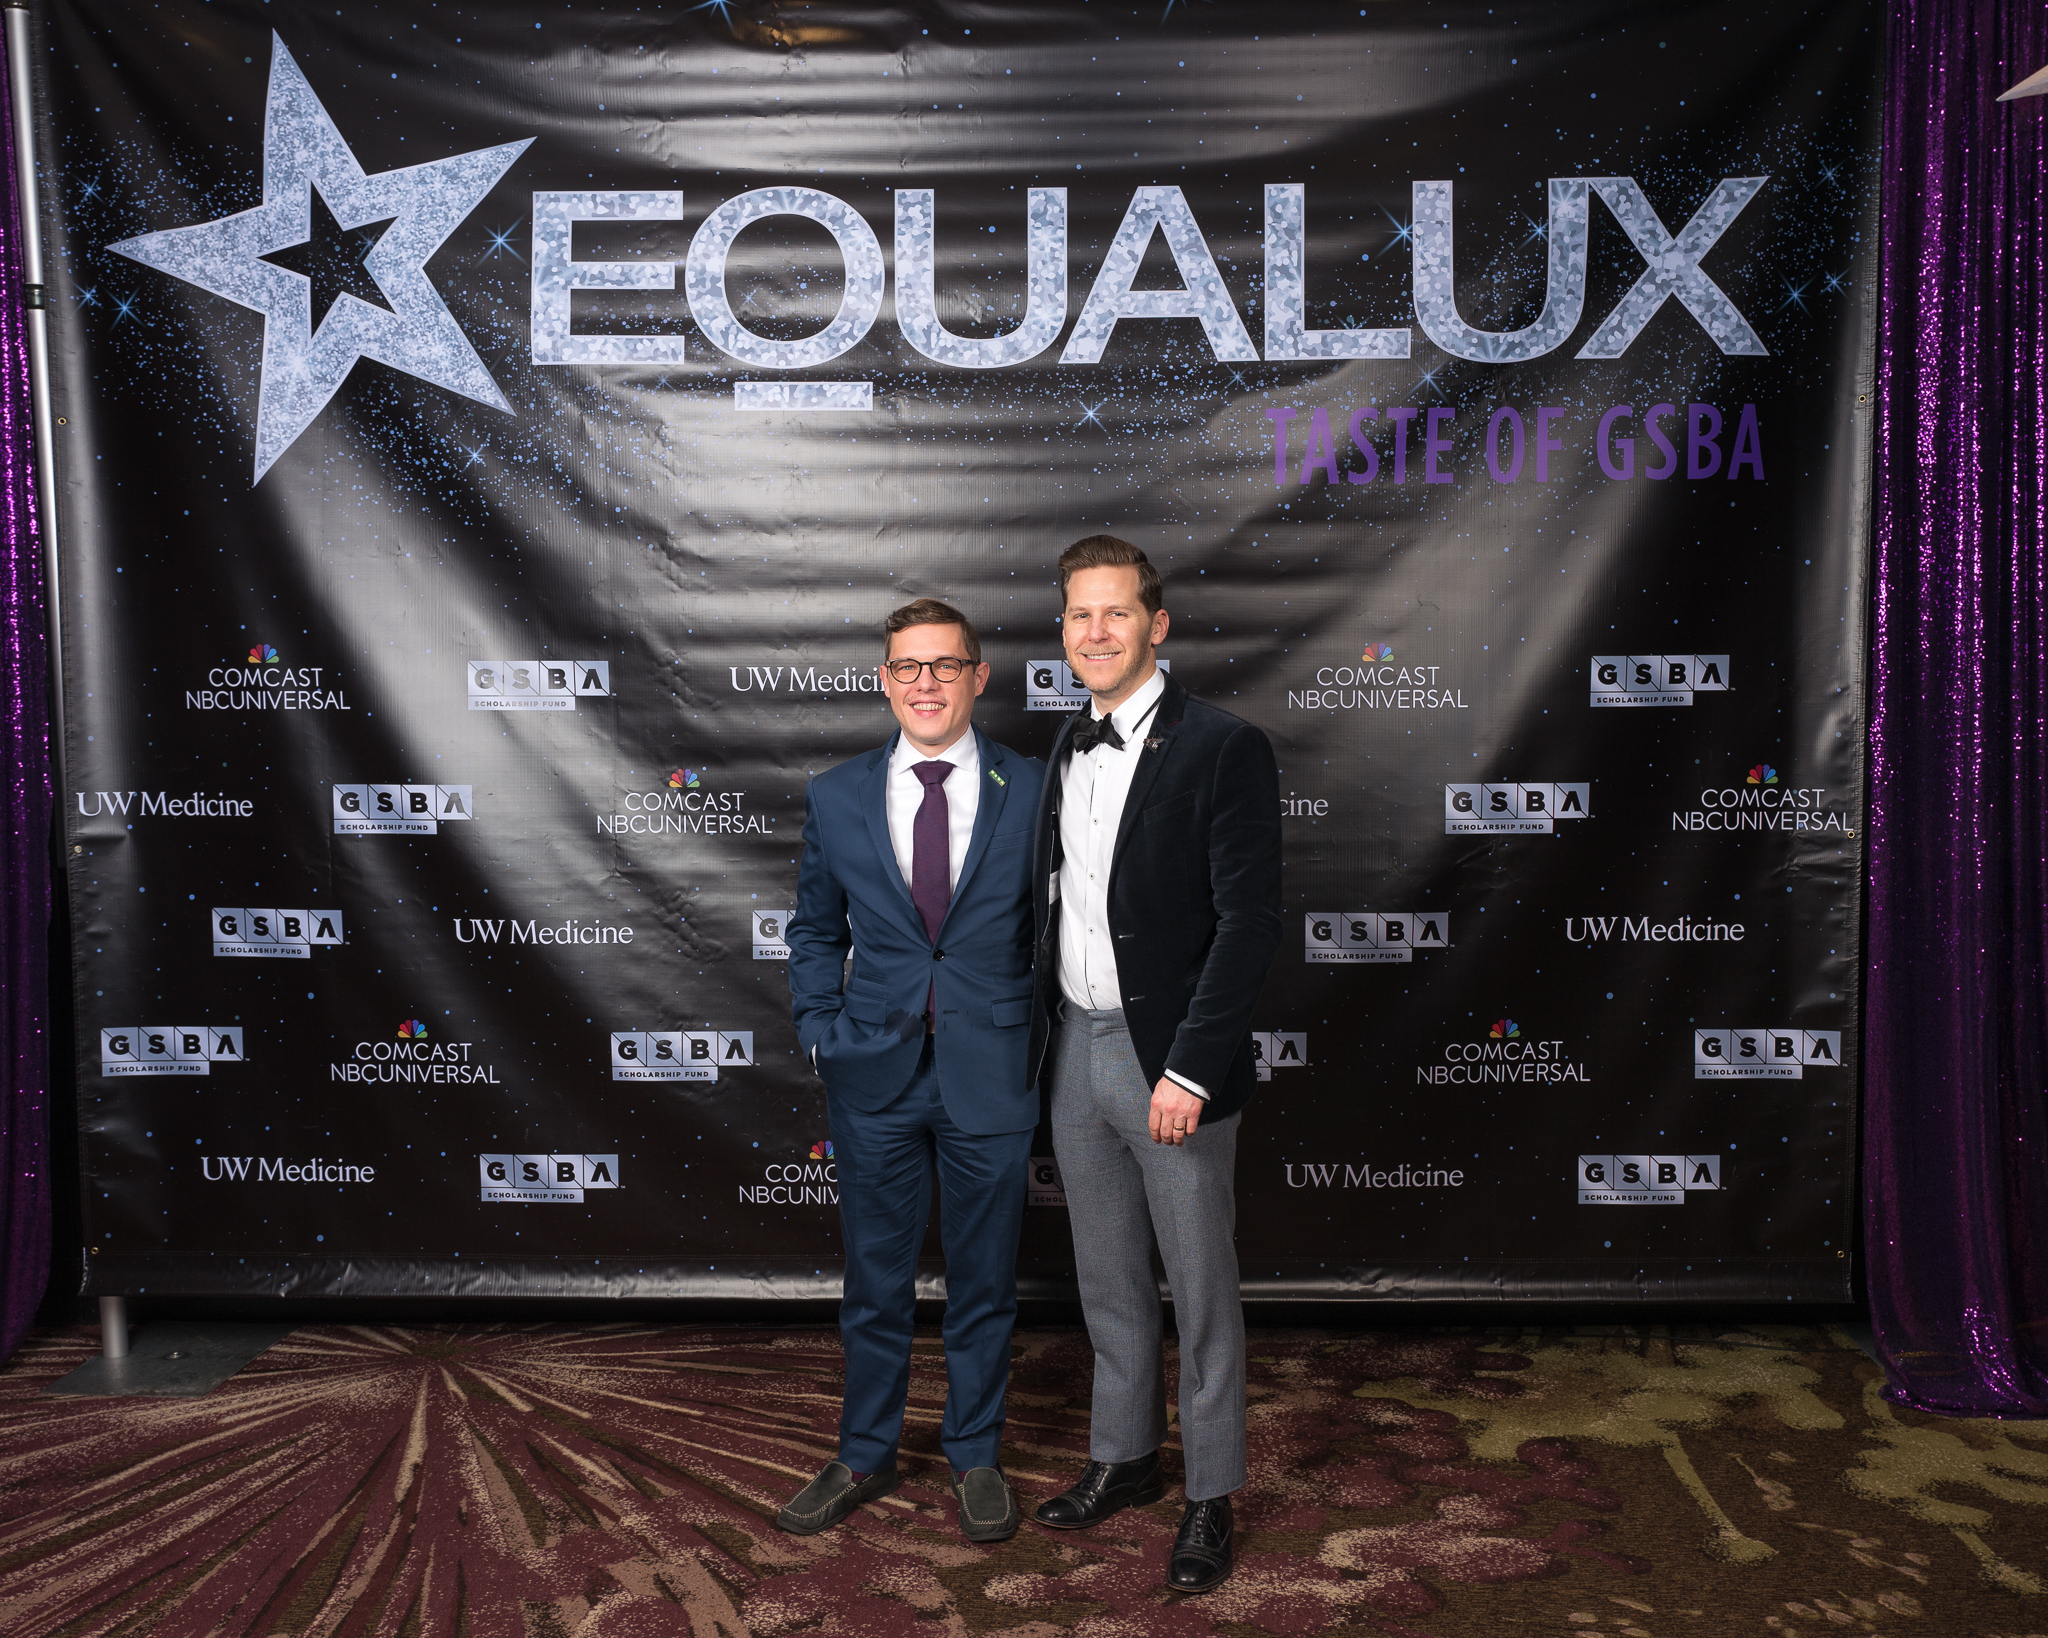 111718_GSBA EQUALUX at The Westin Seattle (Credit- Nate Gowdy)-34.jpg